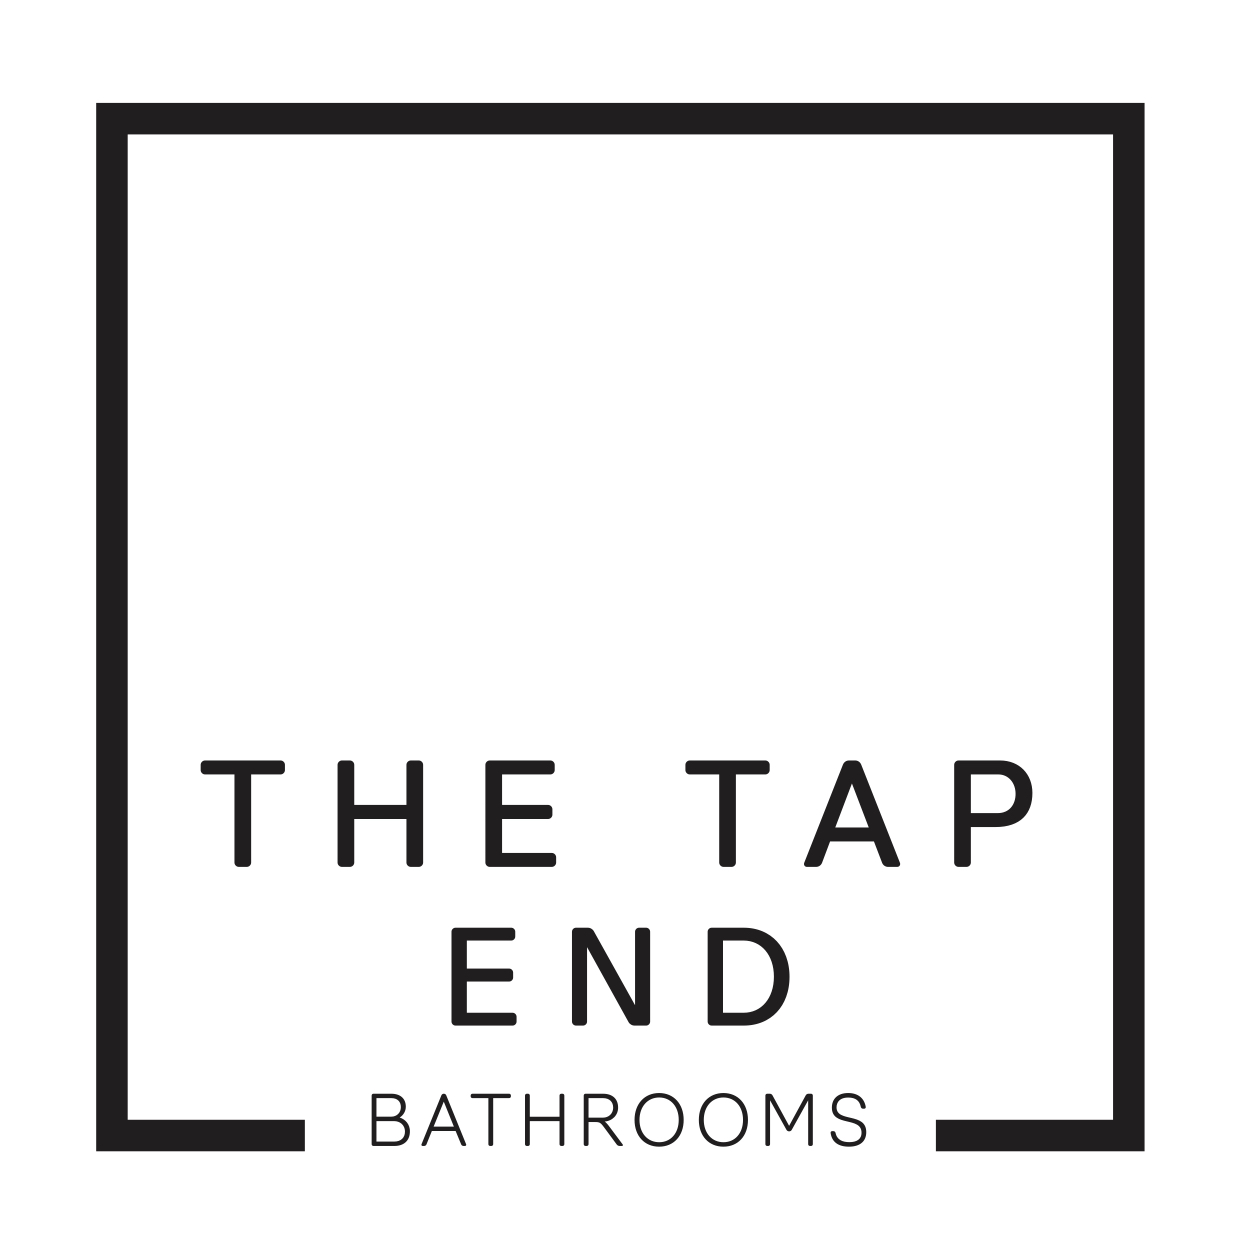 THE TAP END